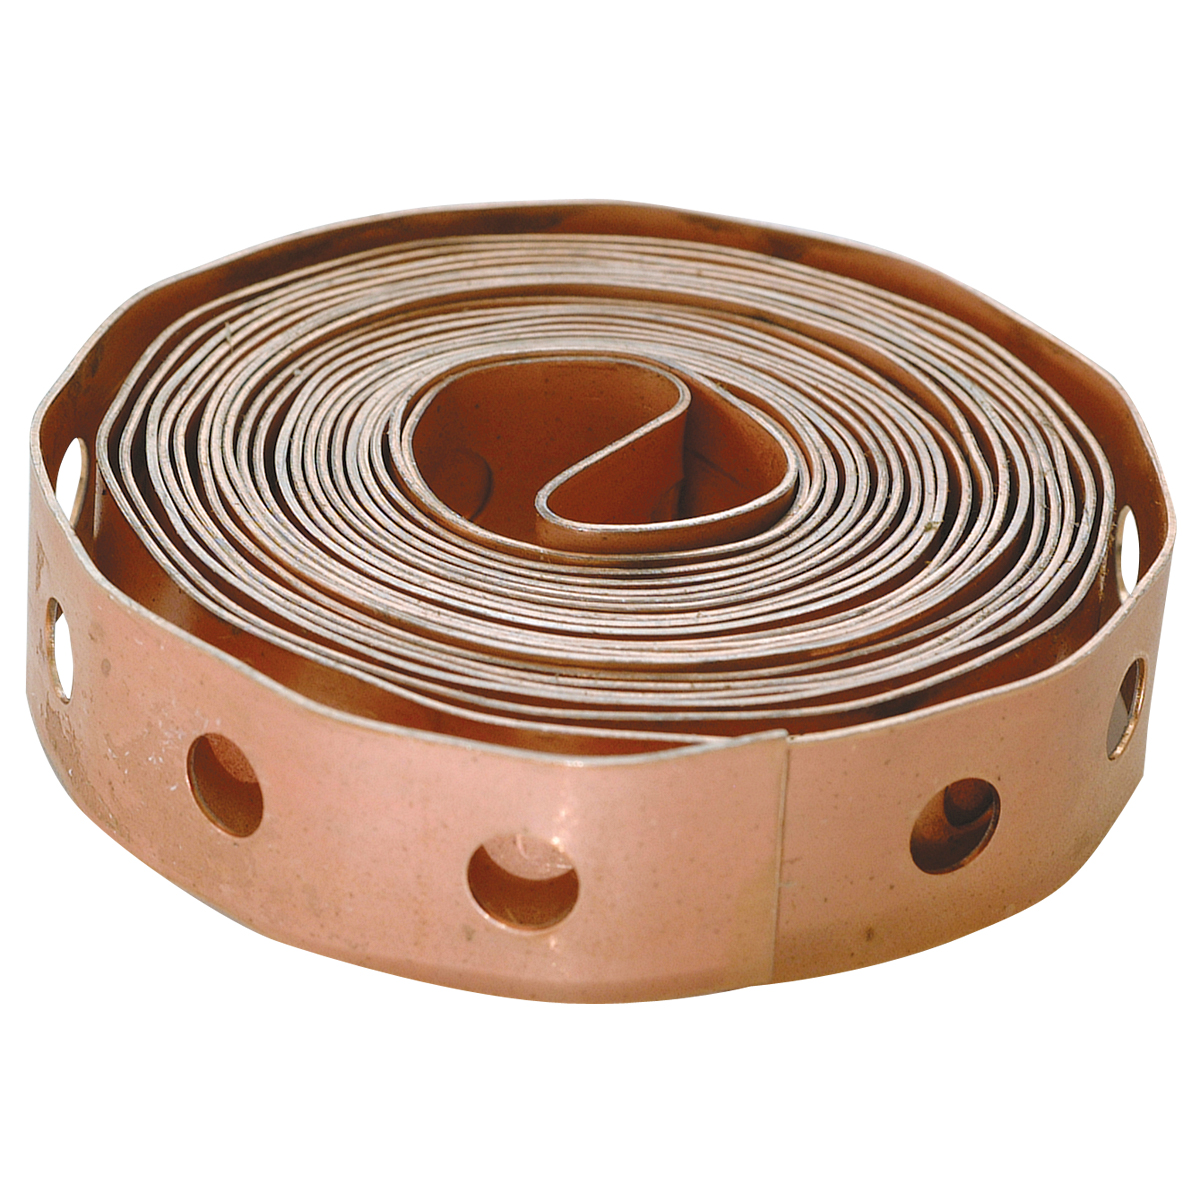 "3/4"" x 10' Copper-Clad Strapping"